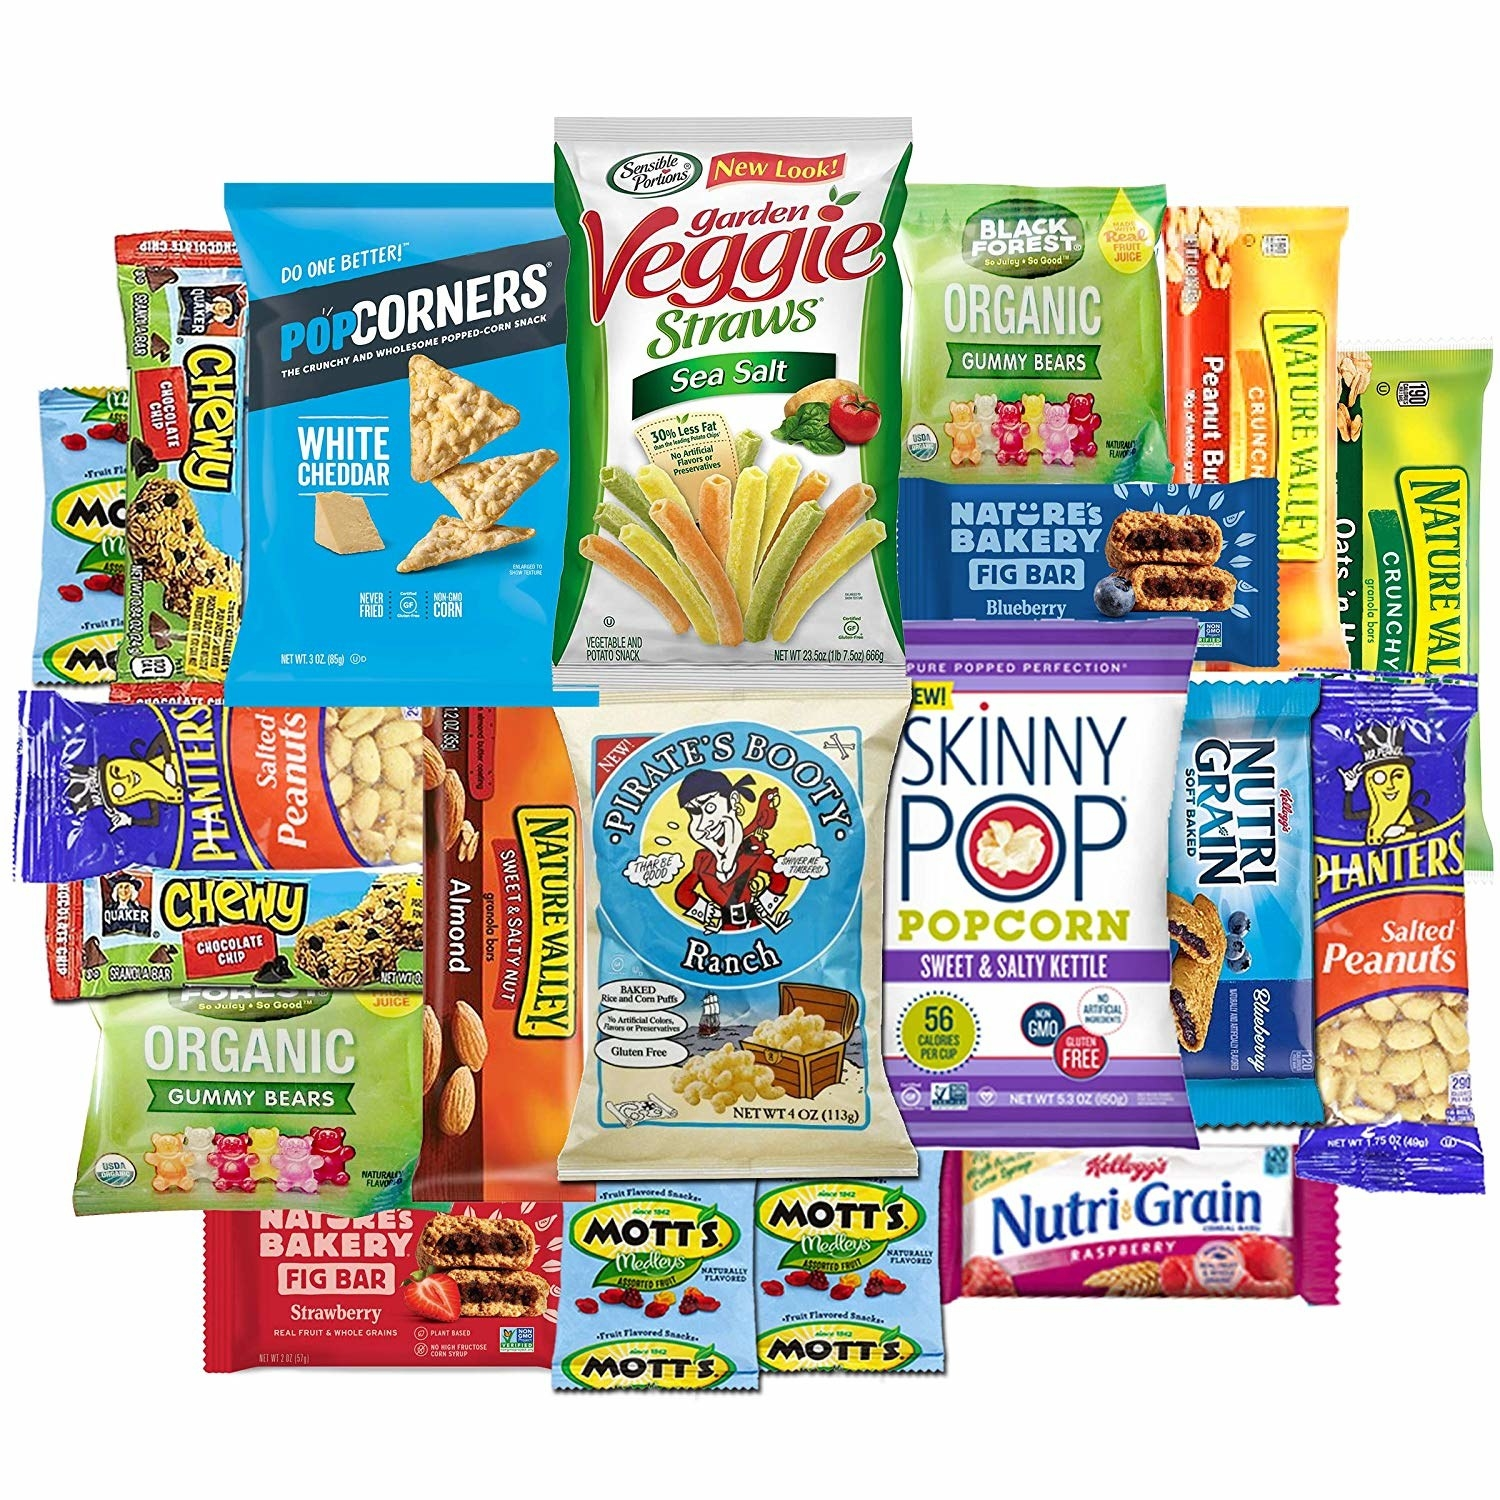 As assortment of granola bars, popcorn, nuts, and other snacks